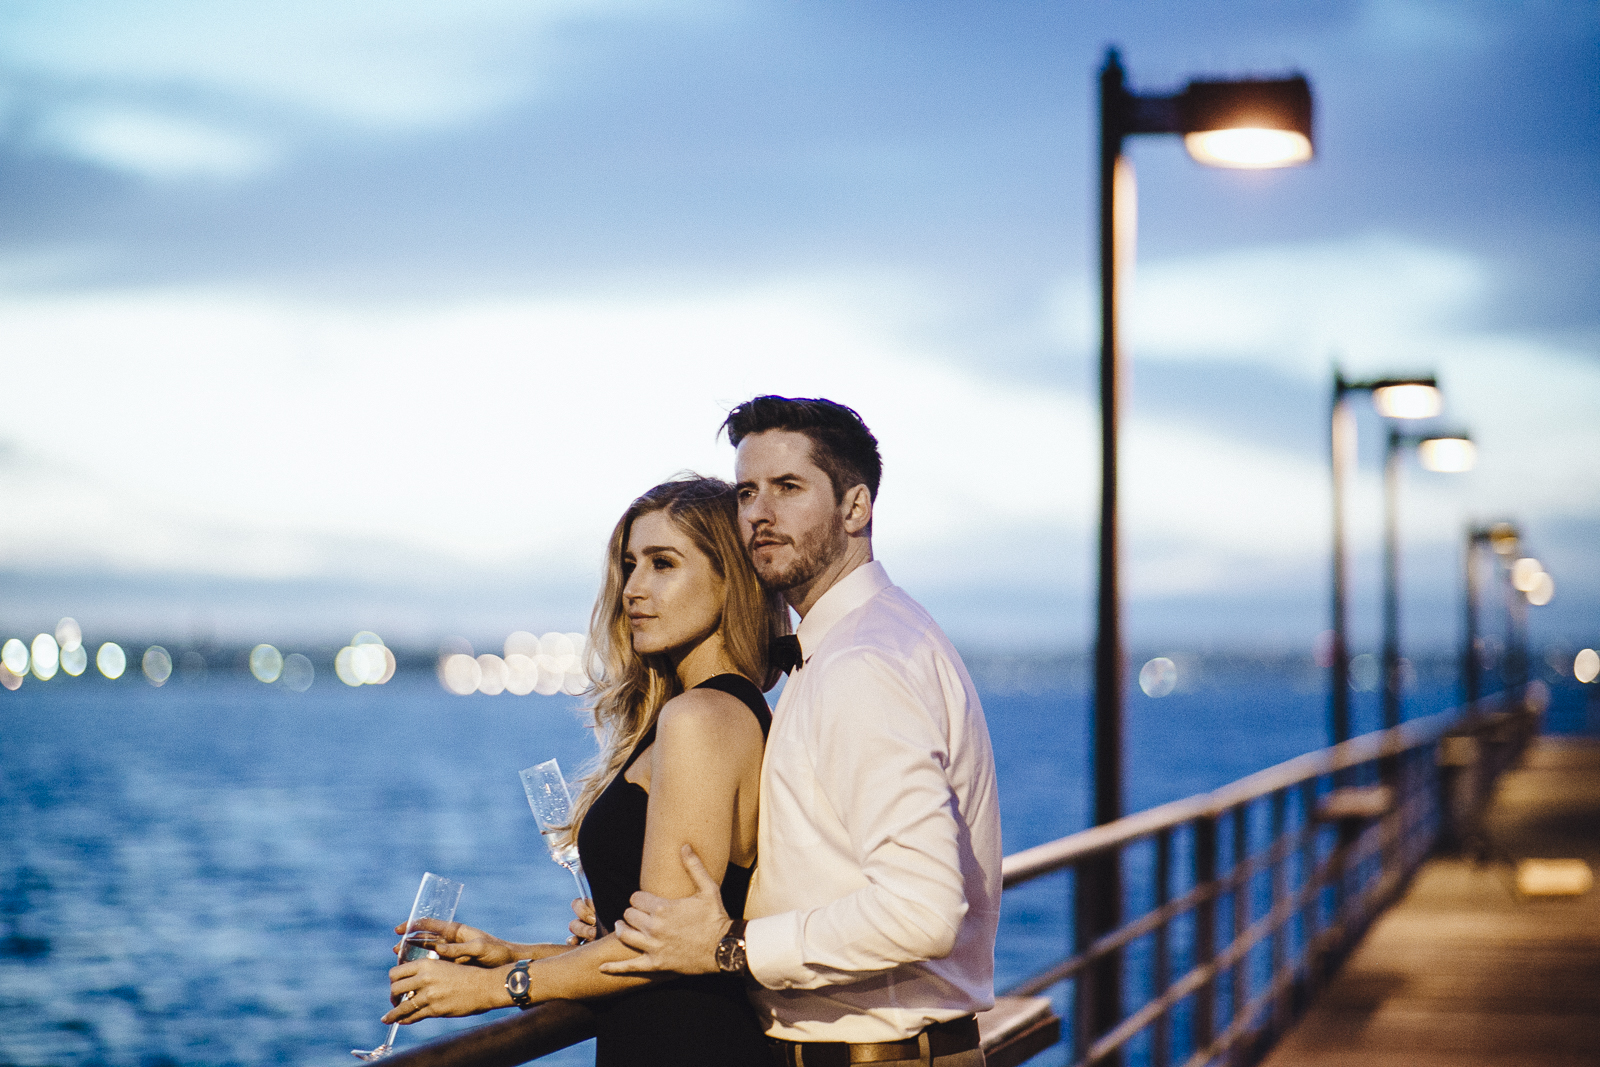 HALEY_&_MICHAEL_ENGAGEMENT_EMBARCADERO_March 03, 2016_IMG_9782.JPG